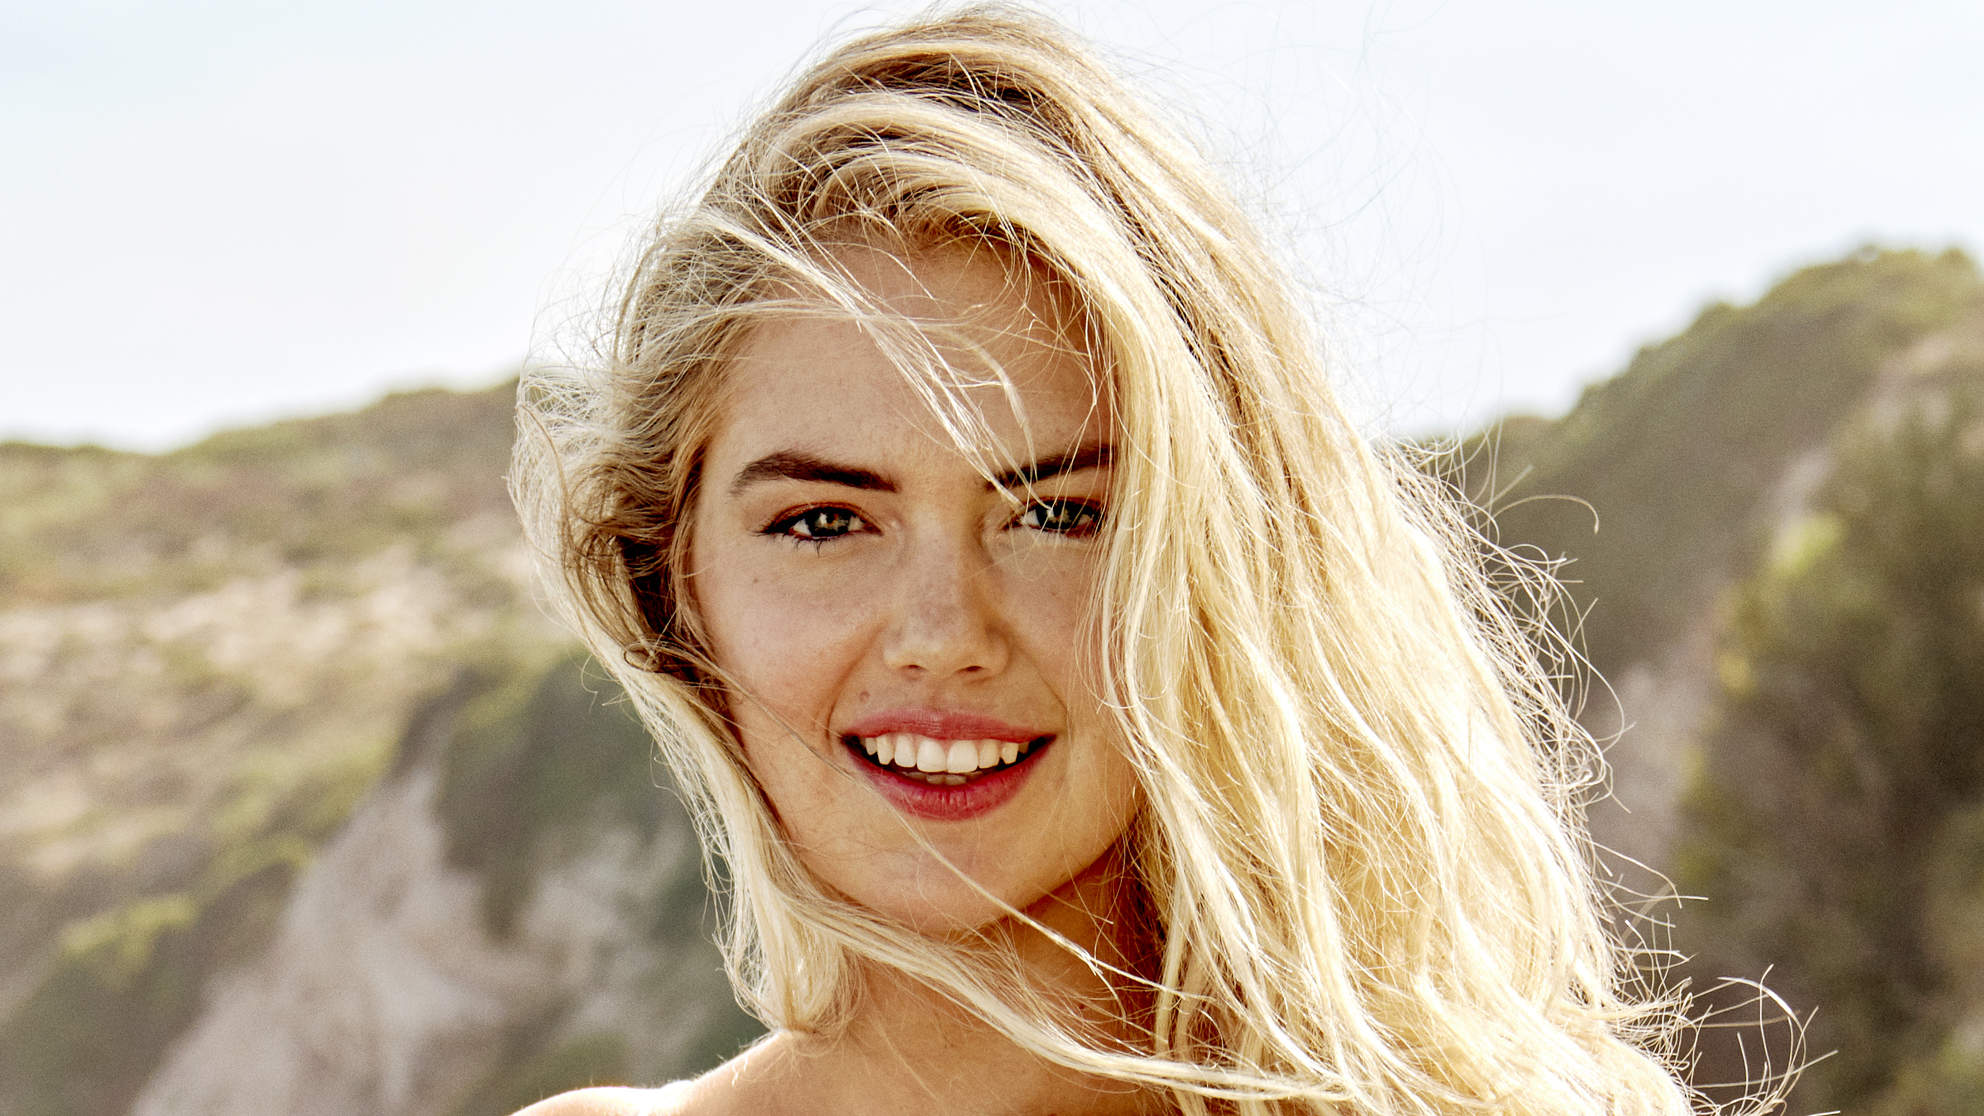 kate-upton health-mag woman health fitness wellbeing wellness real-wellness exercise life happiness